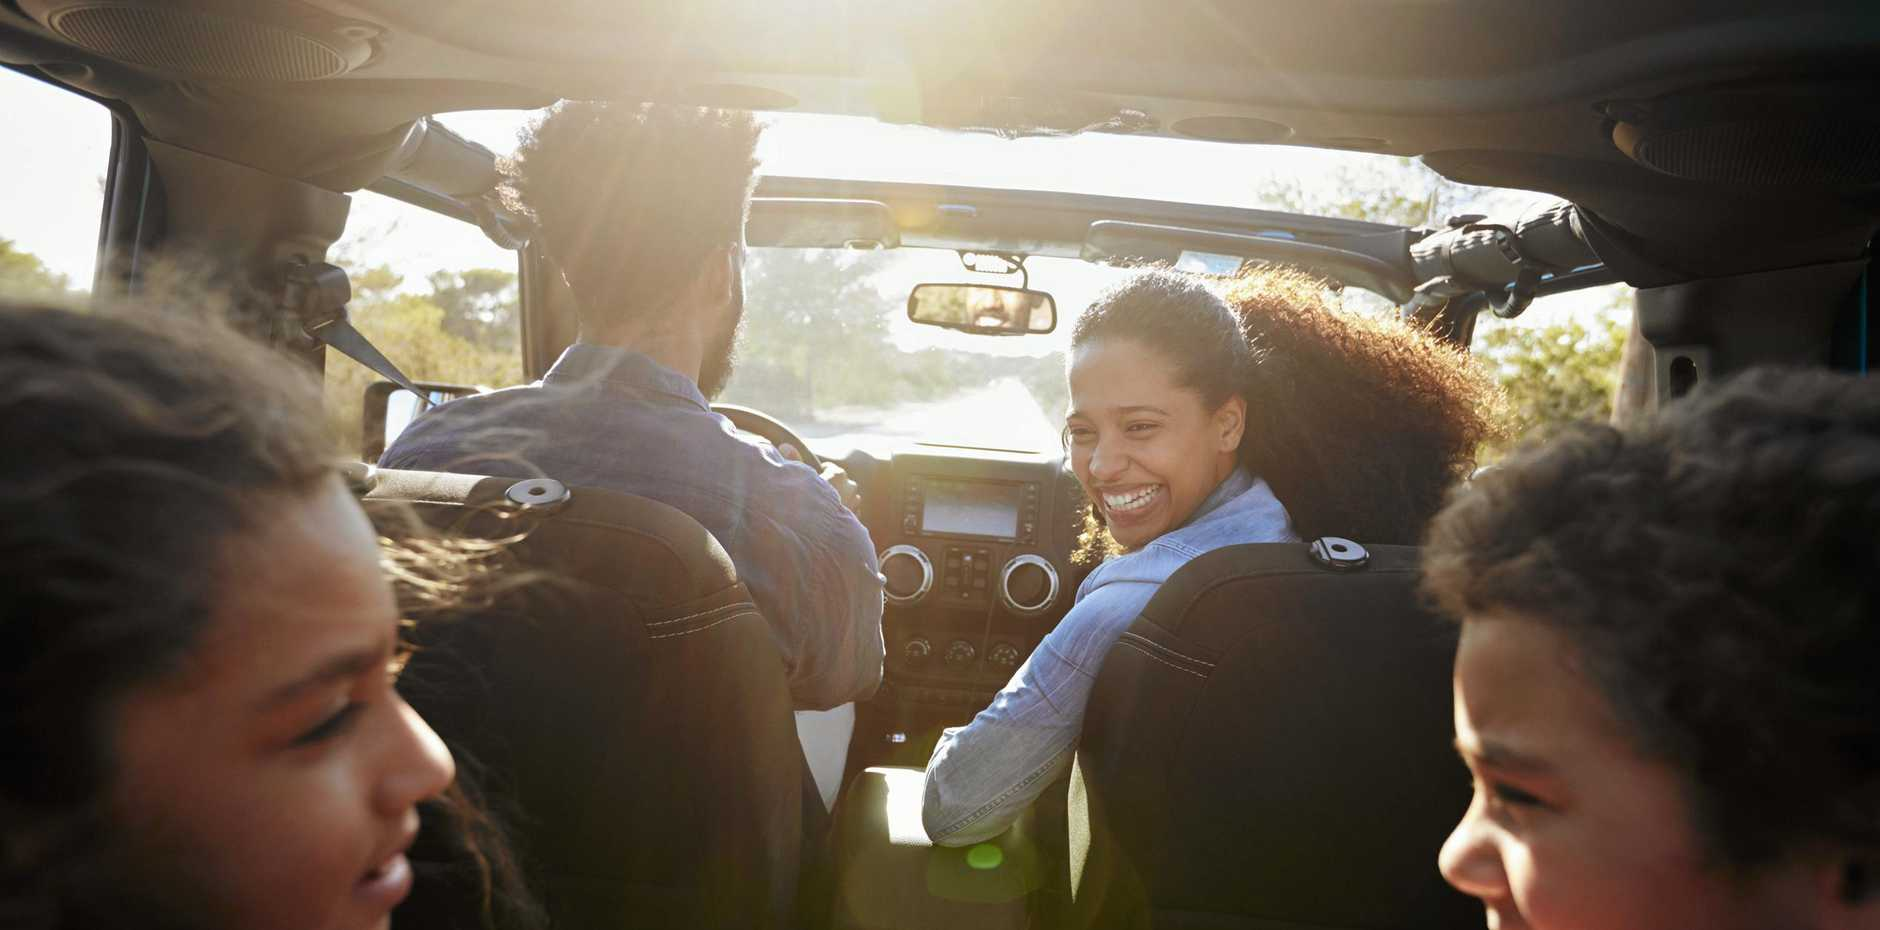 Pull out a few old-fashioned road trip games for the school holidays and watch the kids squirm without their devices.